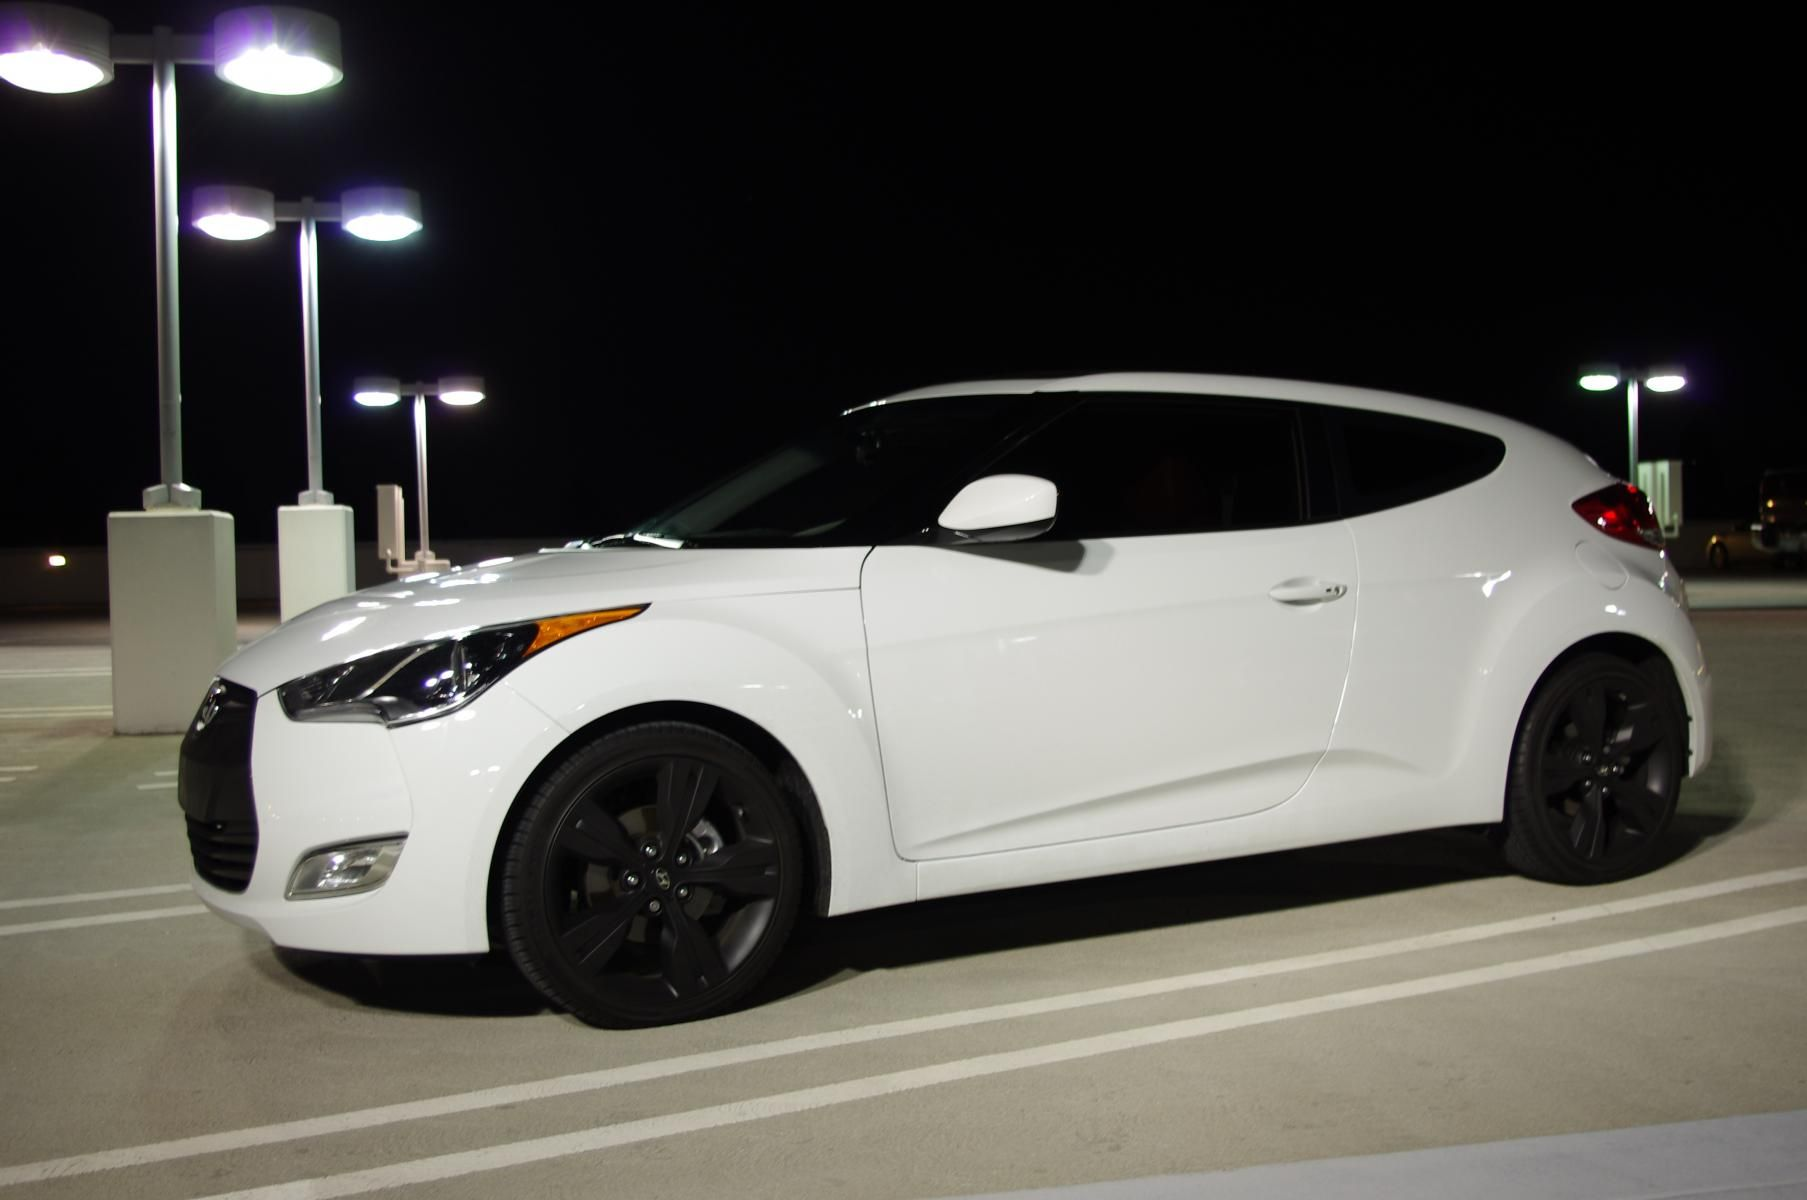 dealership for hyundai buysellsearch mesa sale gasoline with used color in alloy genesis on vehicles arizona az ml cars wheels mk white